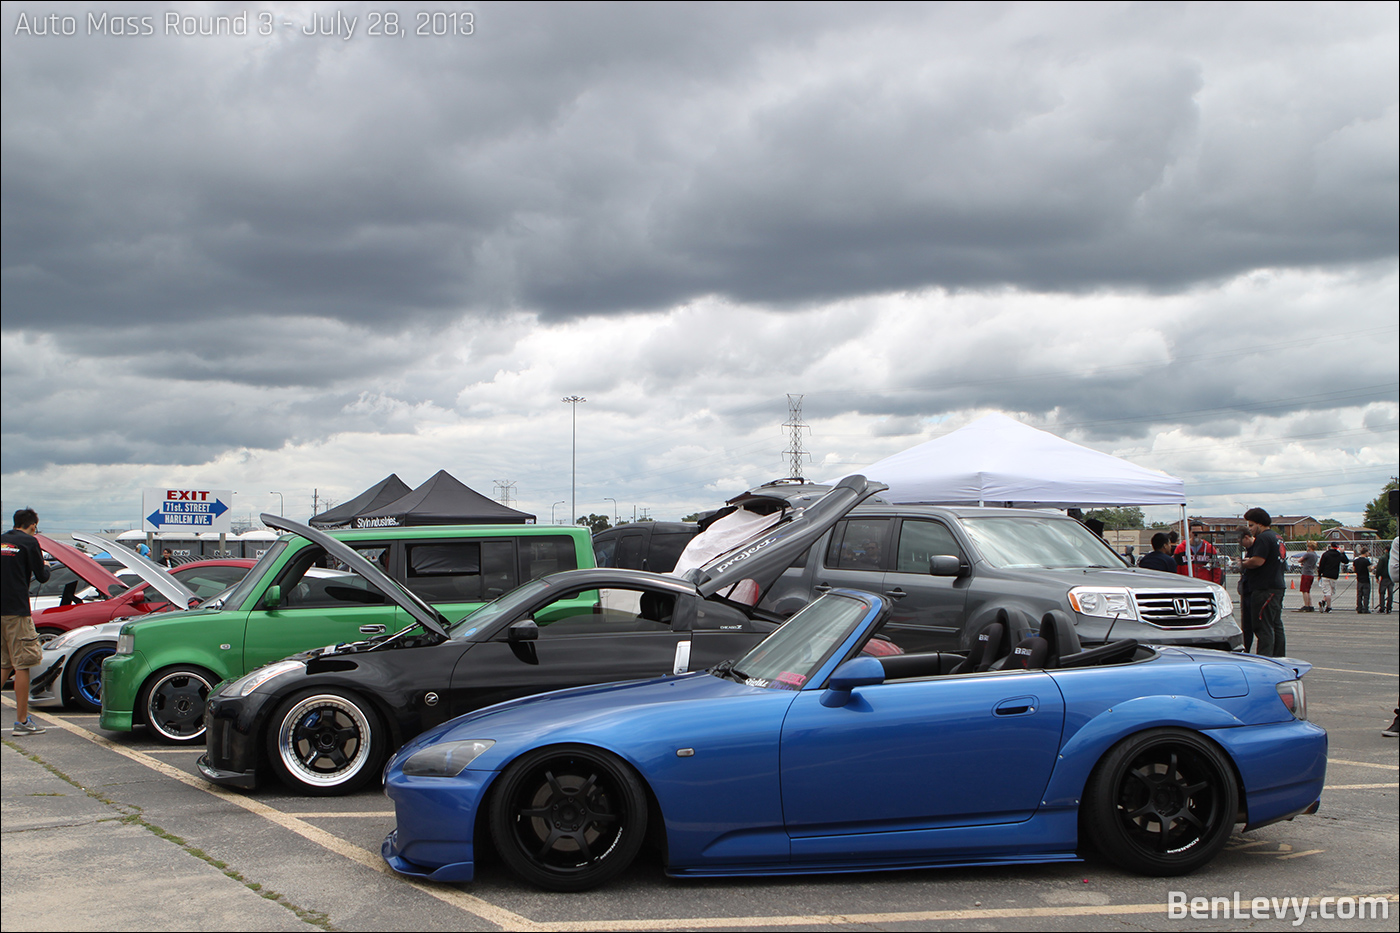 Cars at Auto Mass Round 3